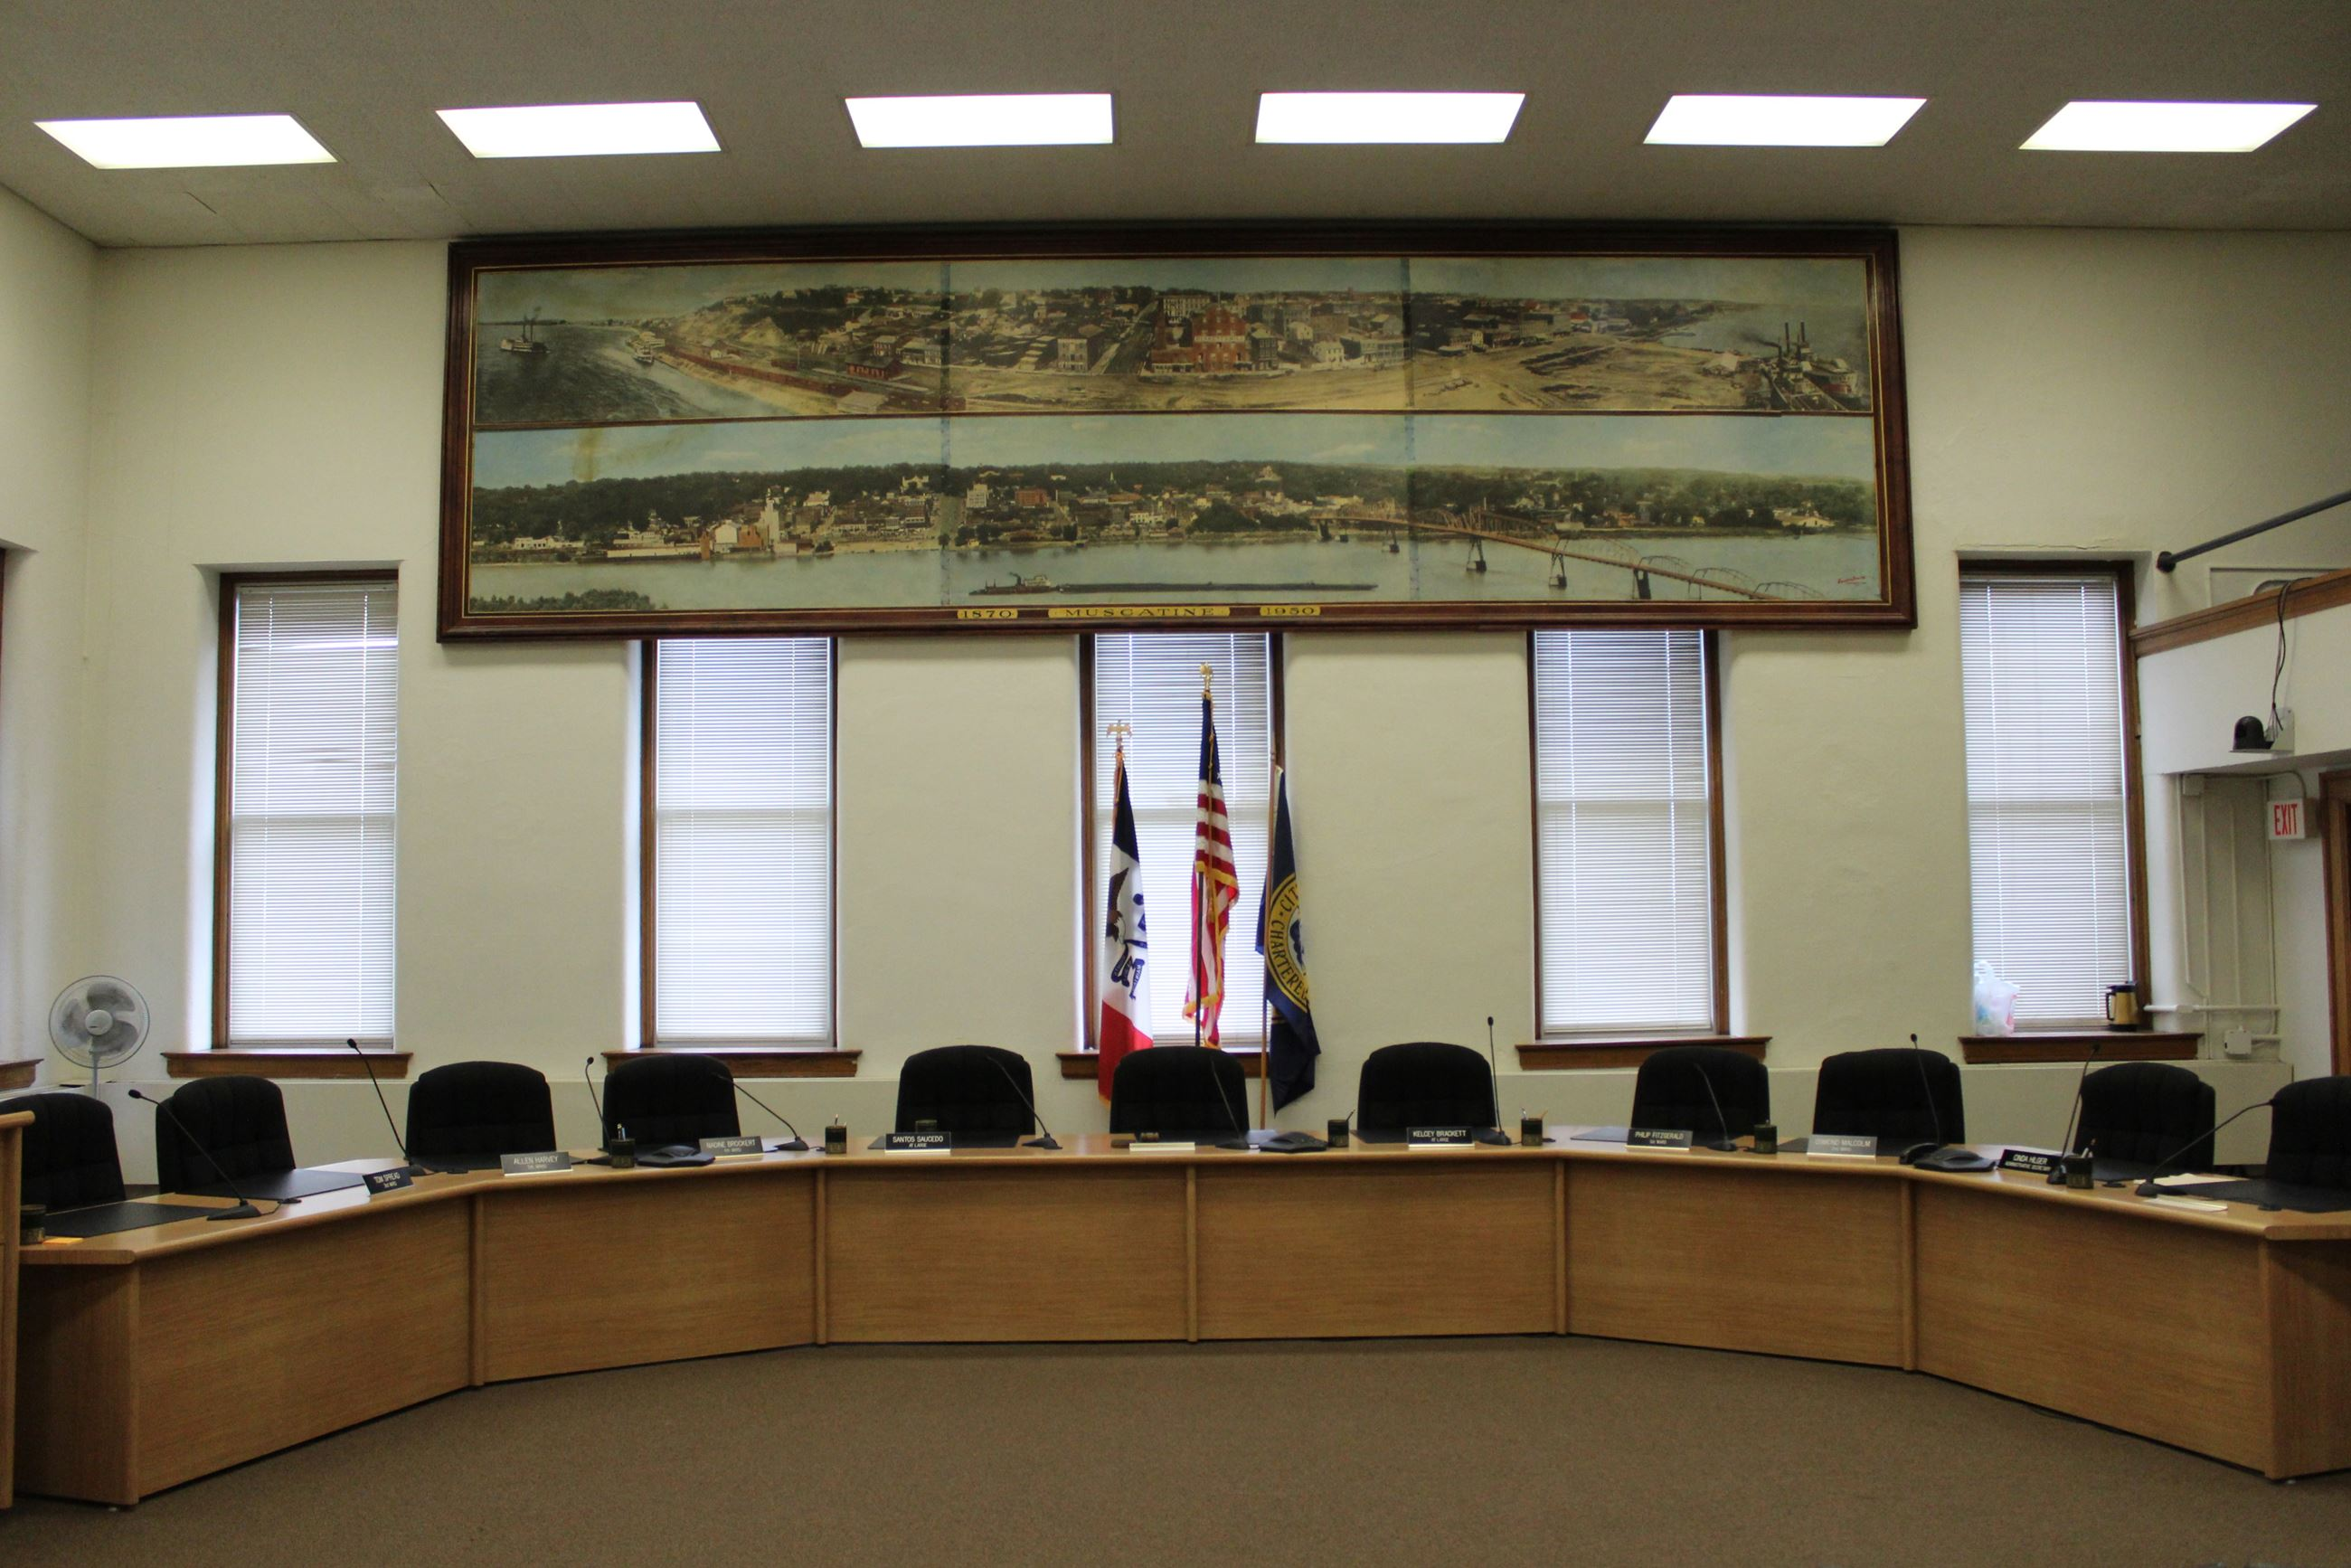 City Council Chamber Seats April 5, 2019 (JPG)